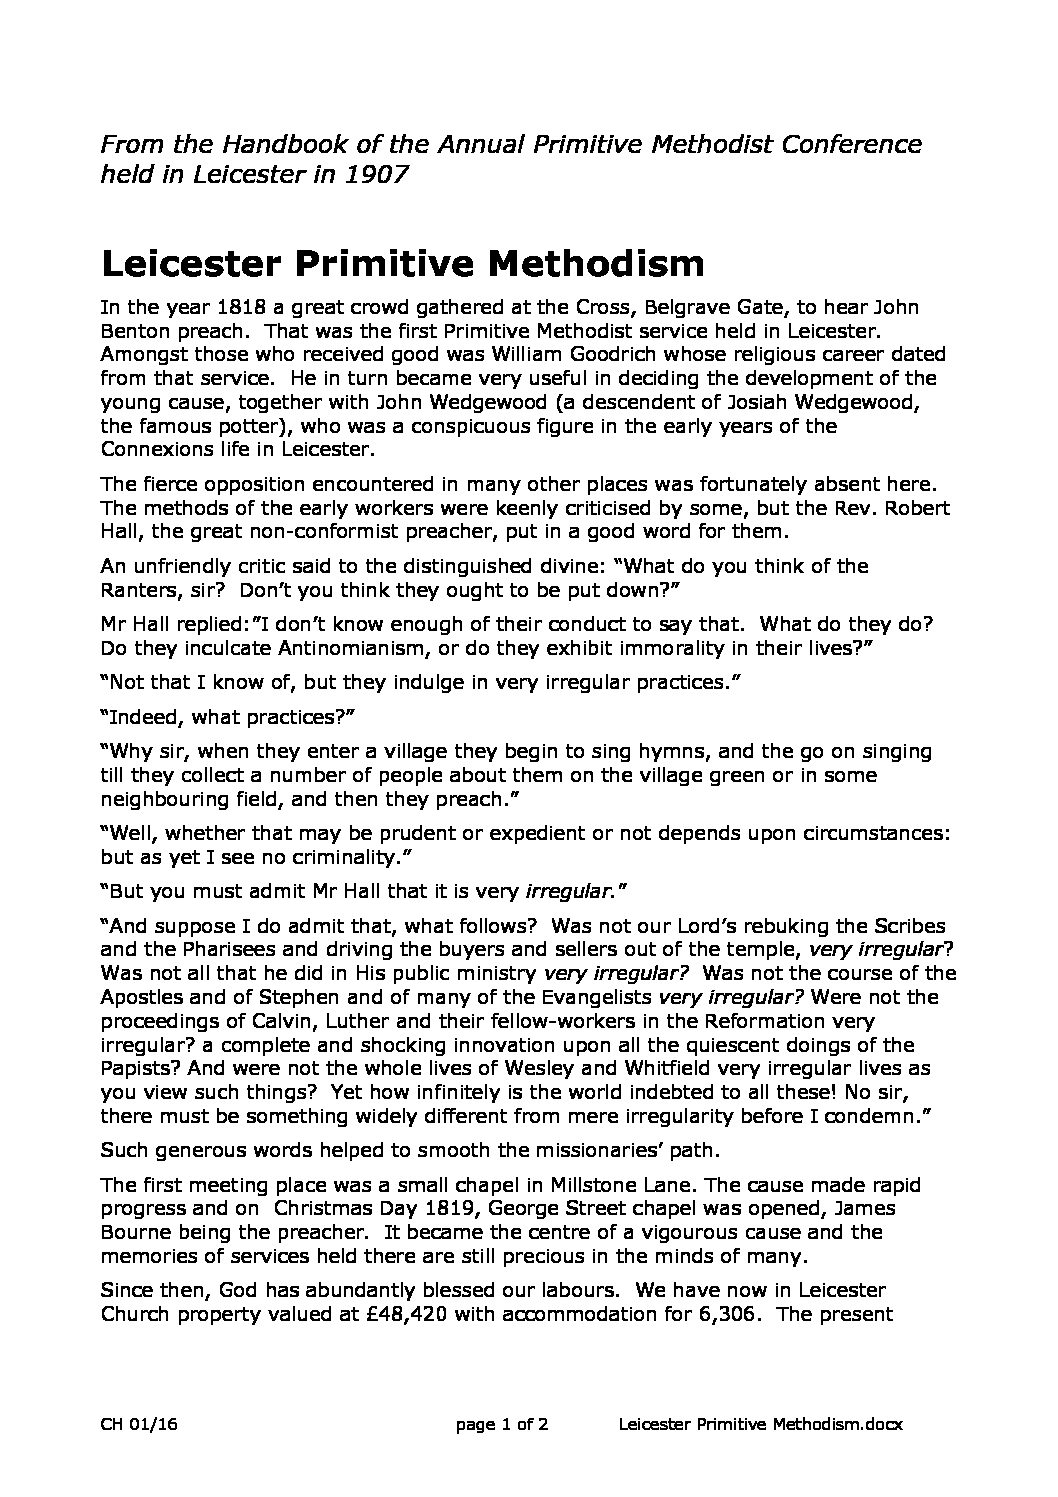 Leicester and Primitive Methodism